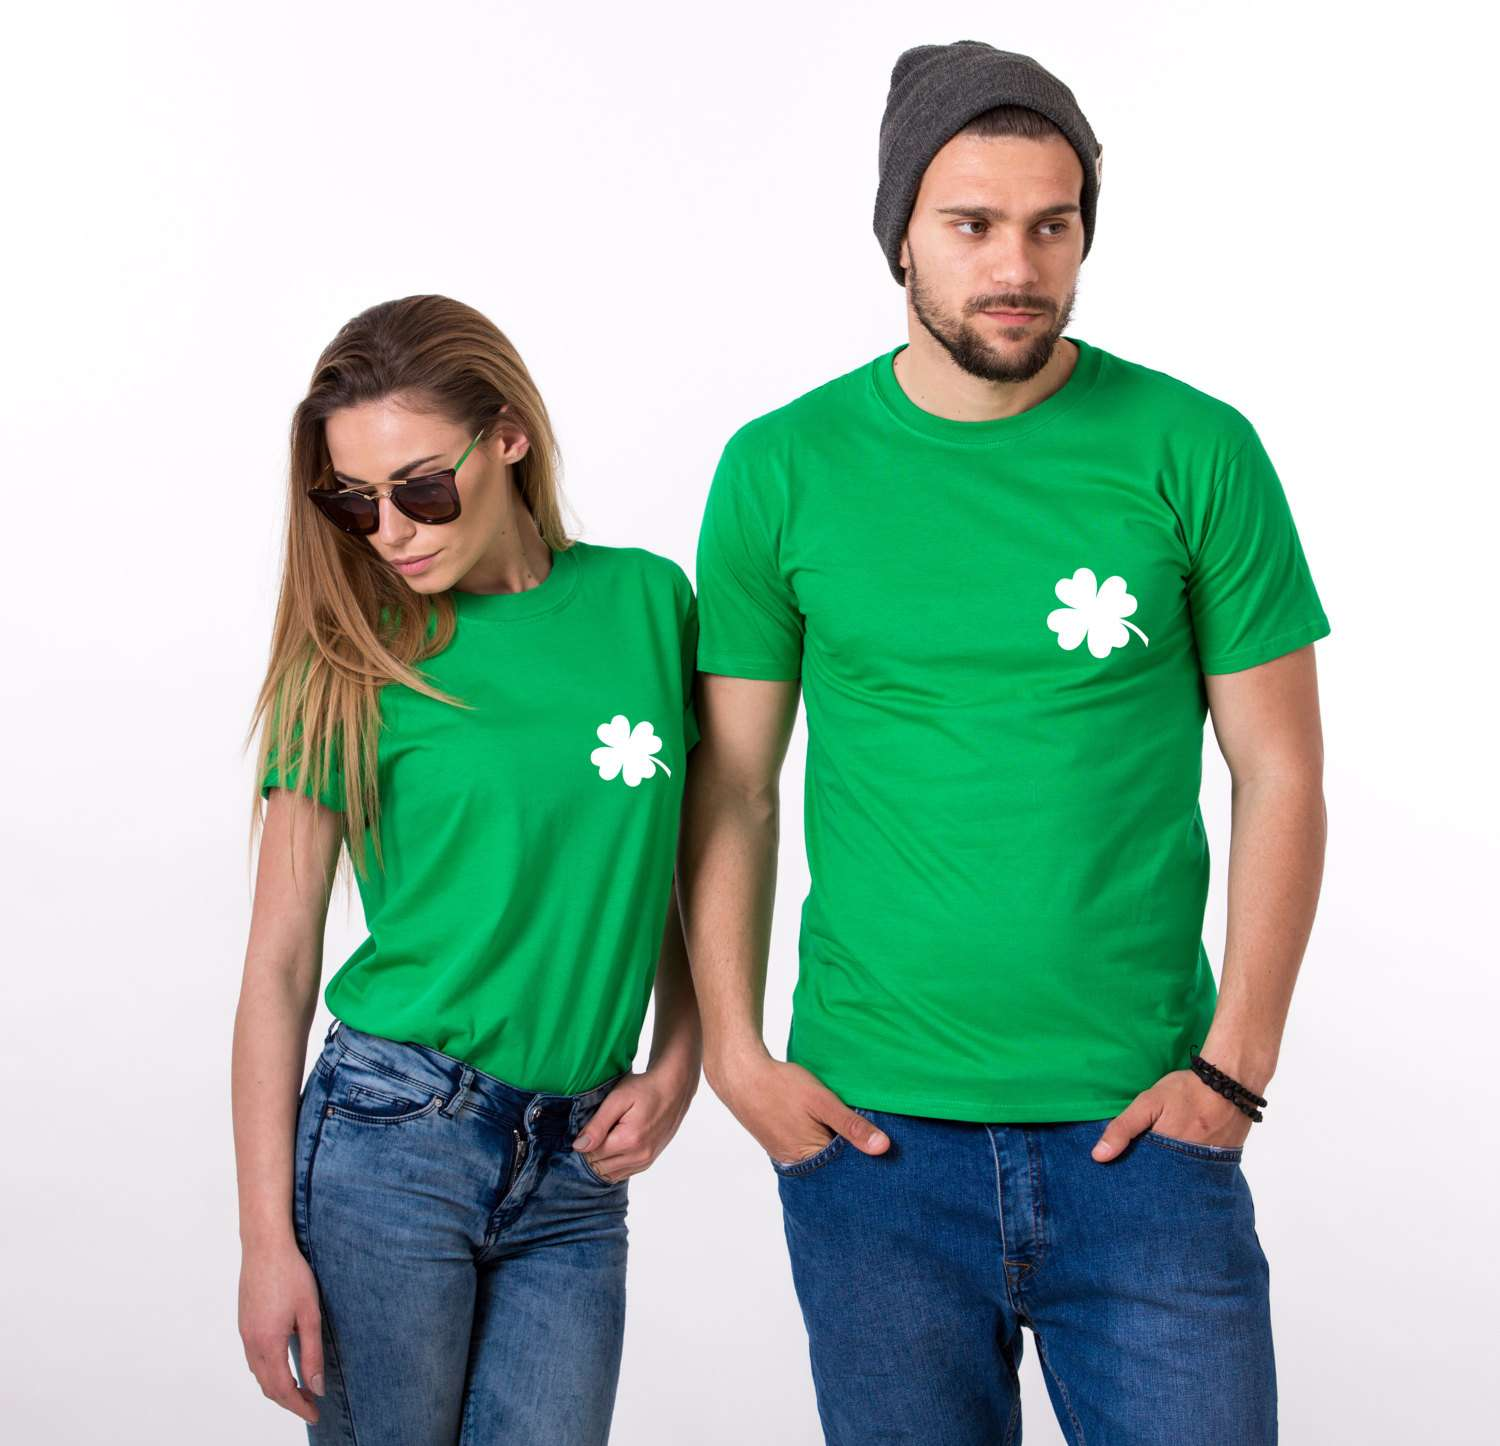 1pc St Patricks Day Family T Shirt Funny Shamrocks Printed Tops Saint Paddys Day Tshirt Irish Chest Clover Boobs Tee Mens Womens